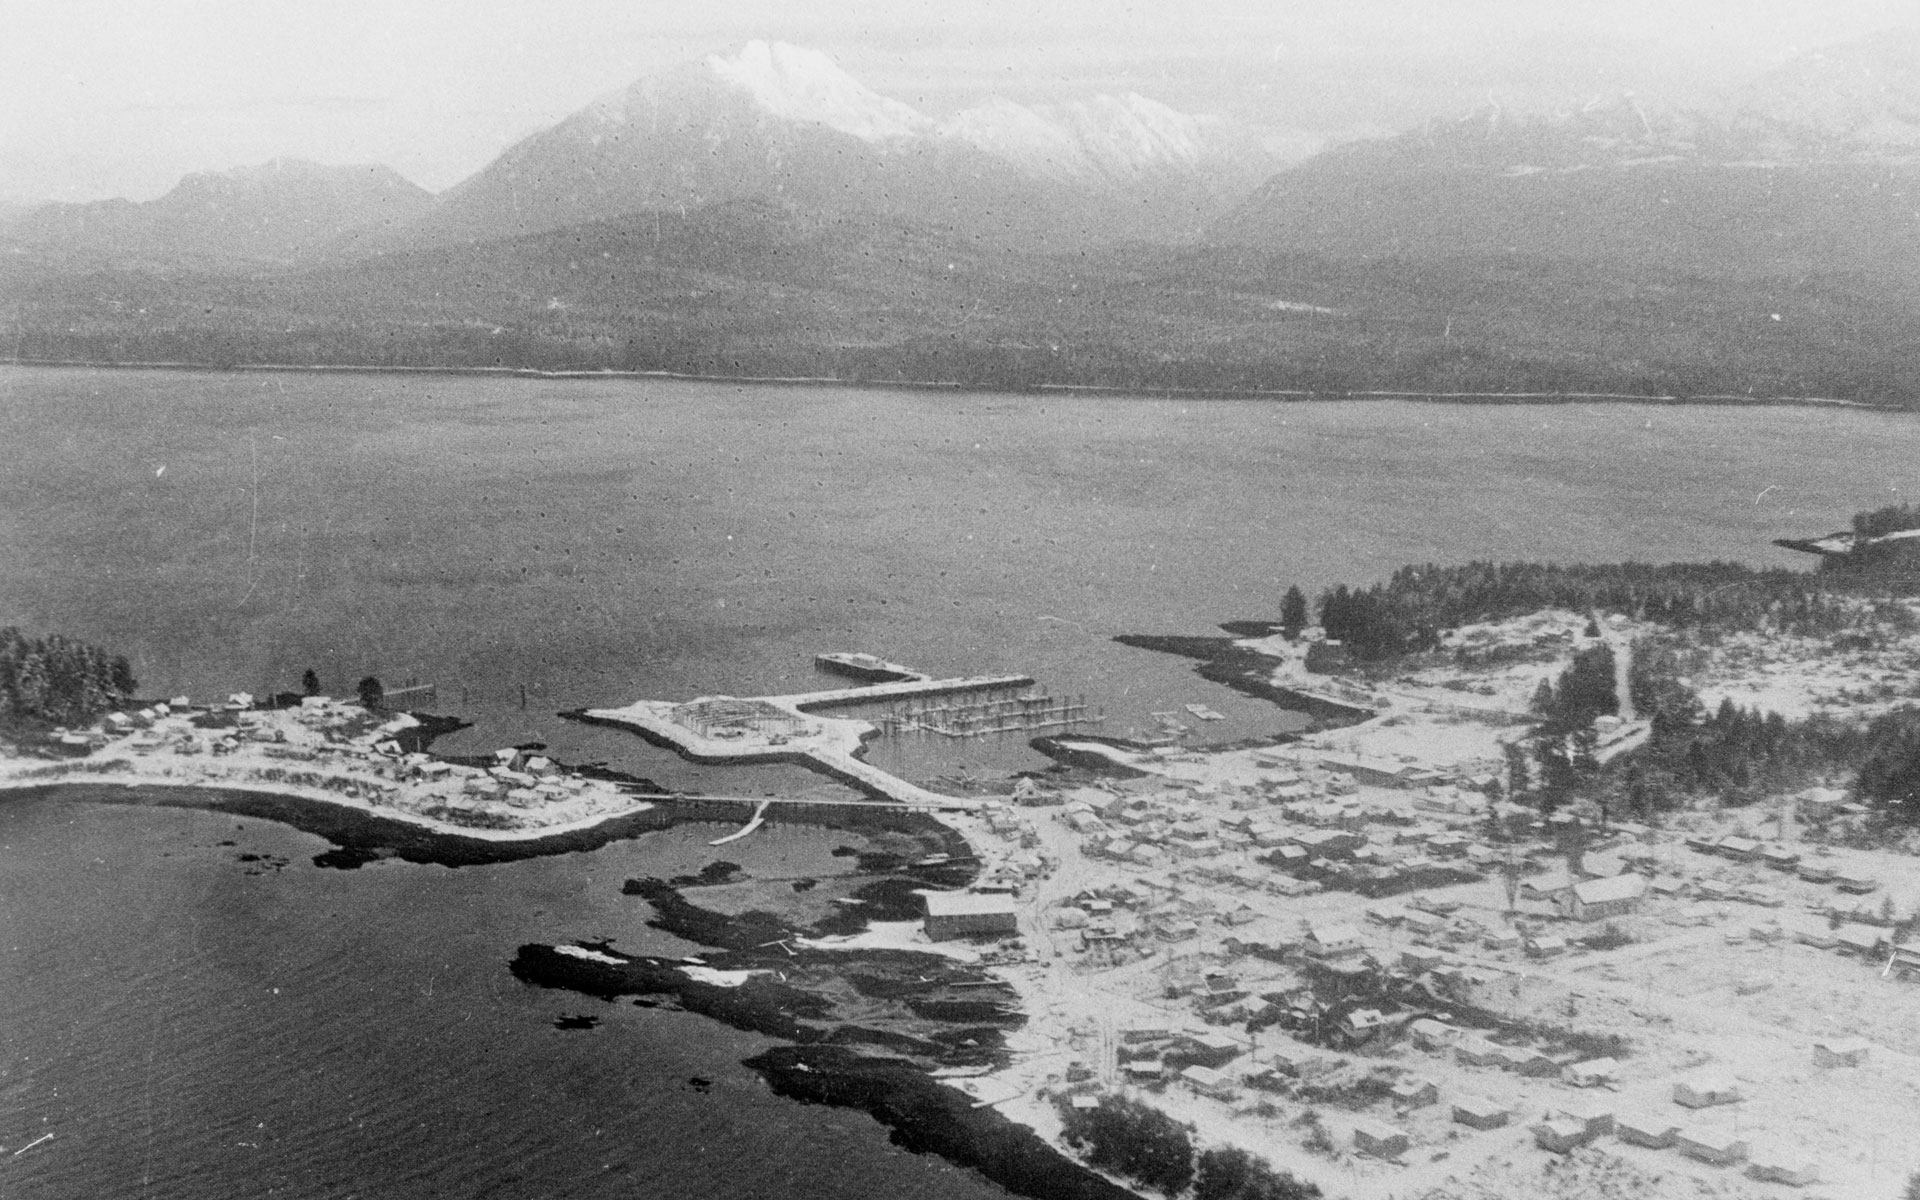 Cannery buildings cover the land in the foreground. Mountains are visible across the water in the background.